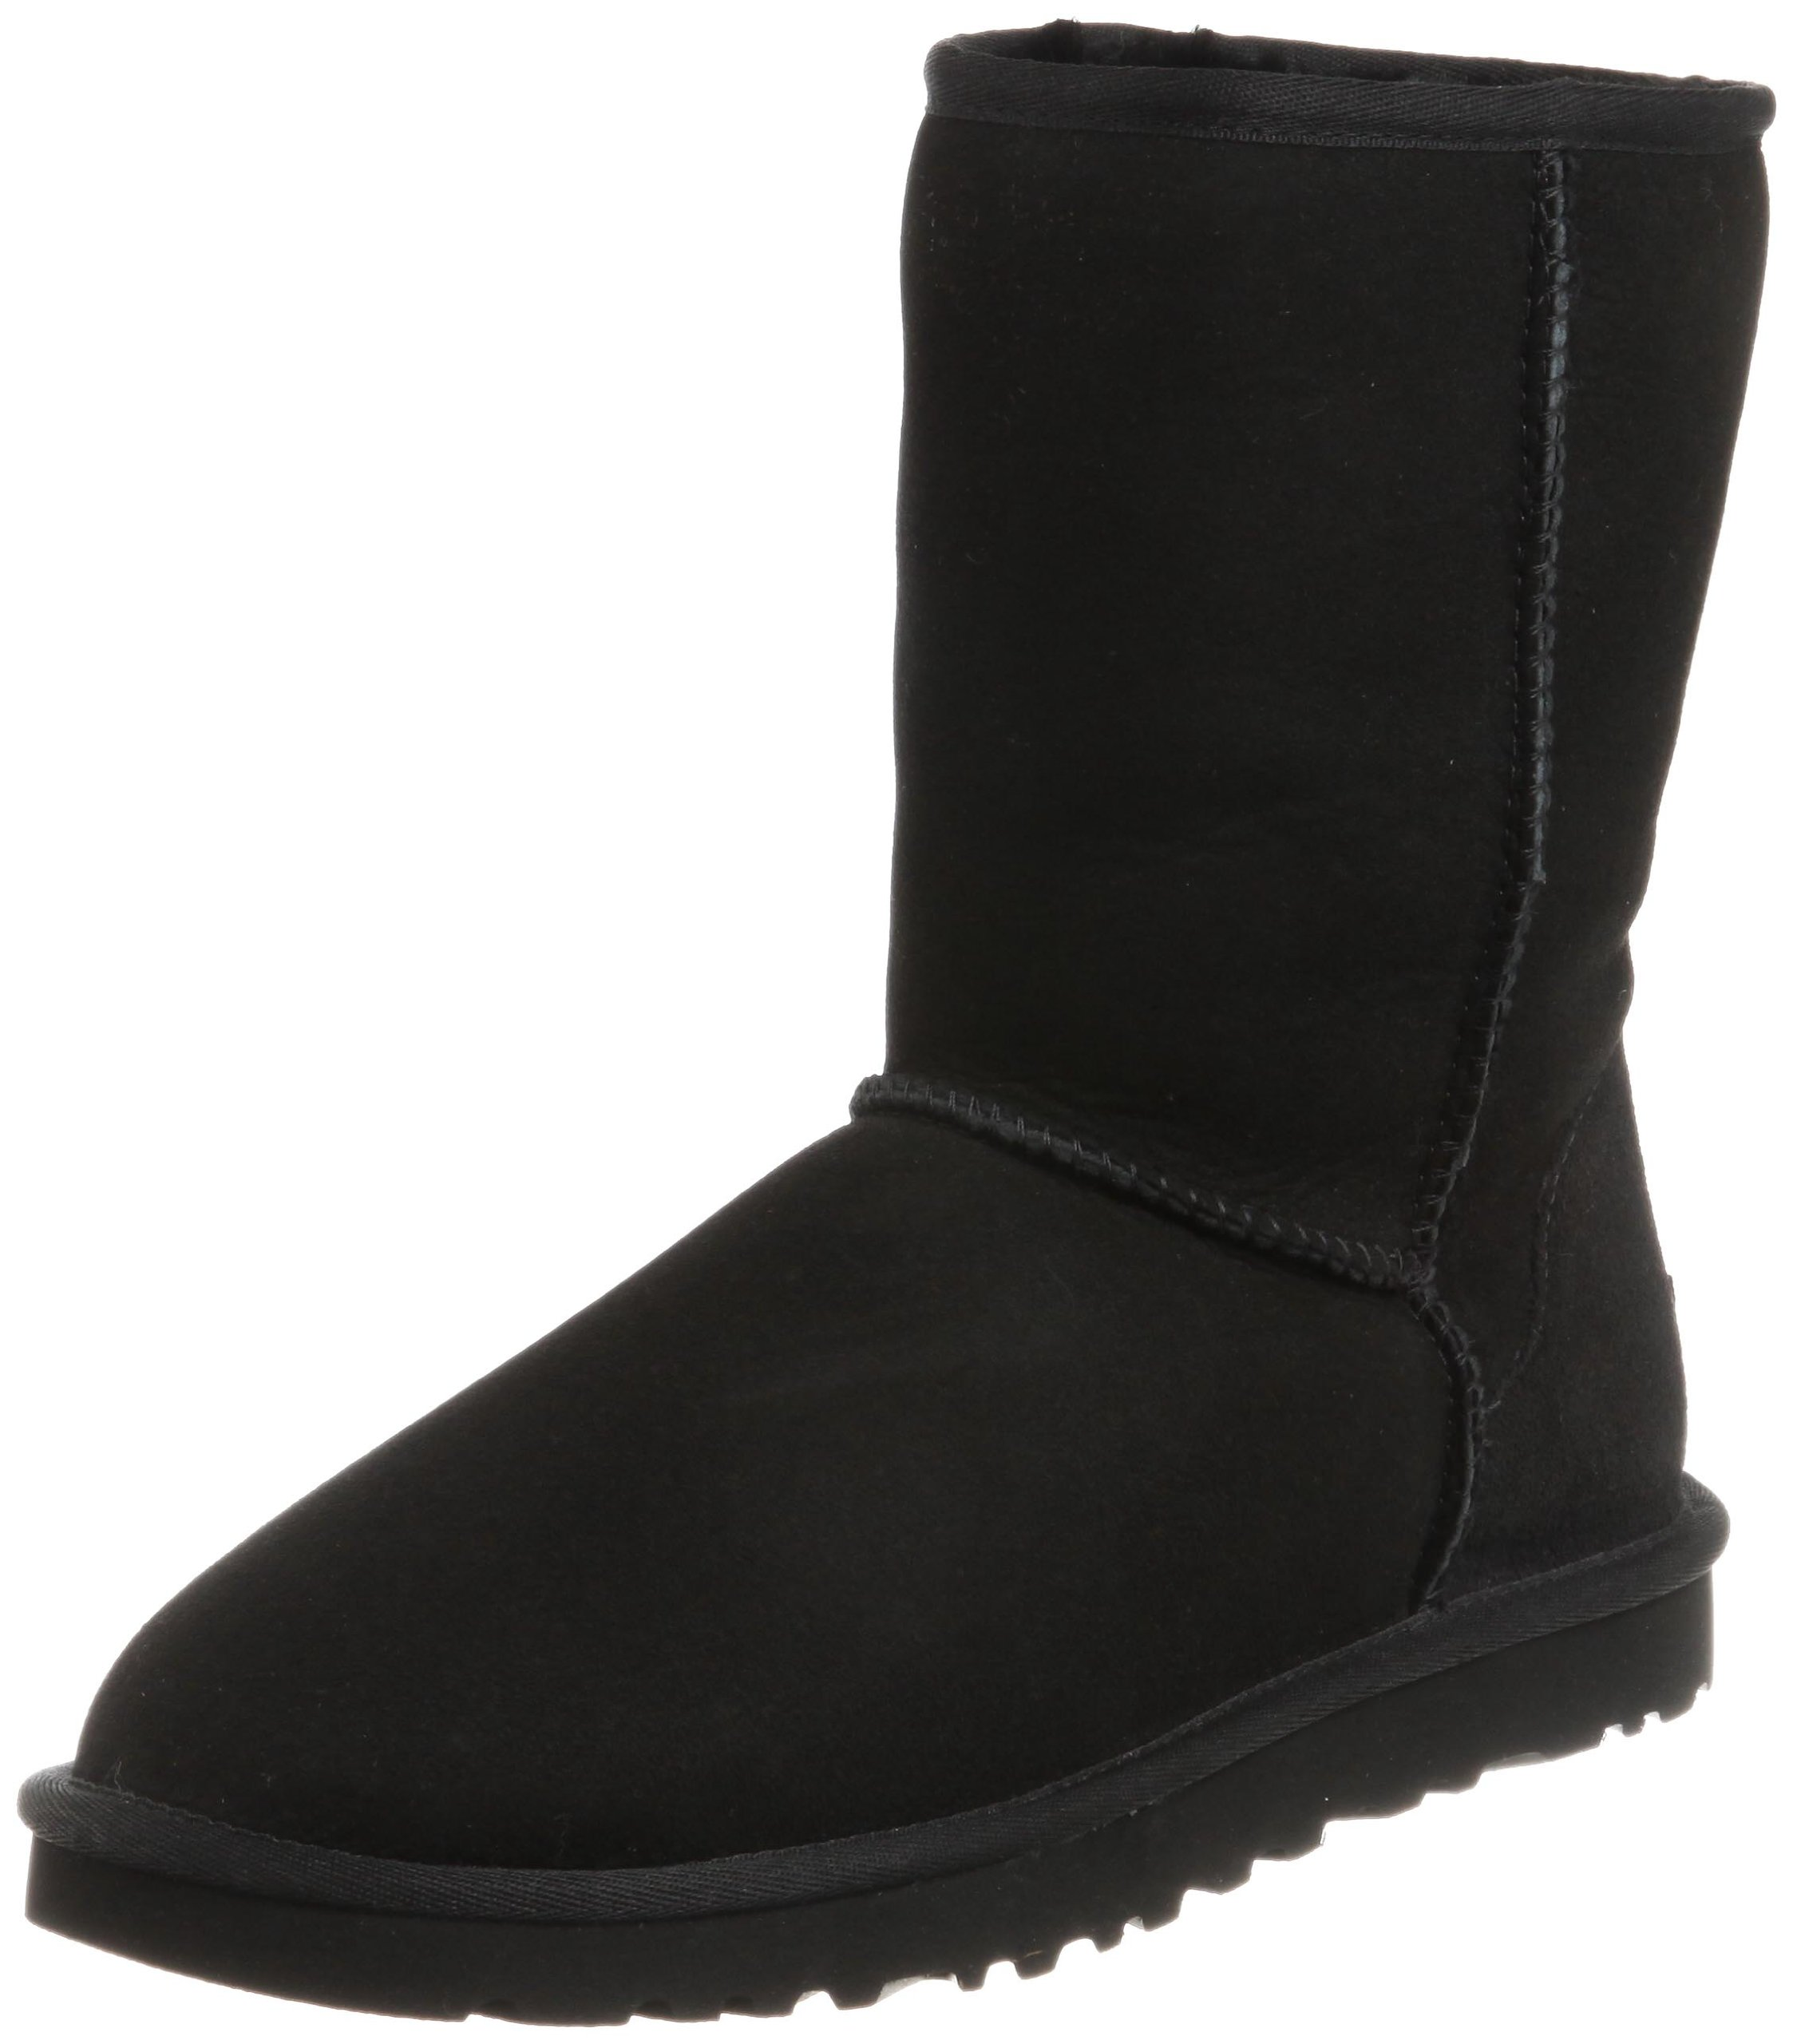 New Ugg Women's Classic Short Boot Suede Stretch Womens Shoes